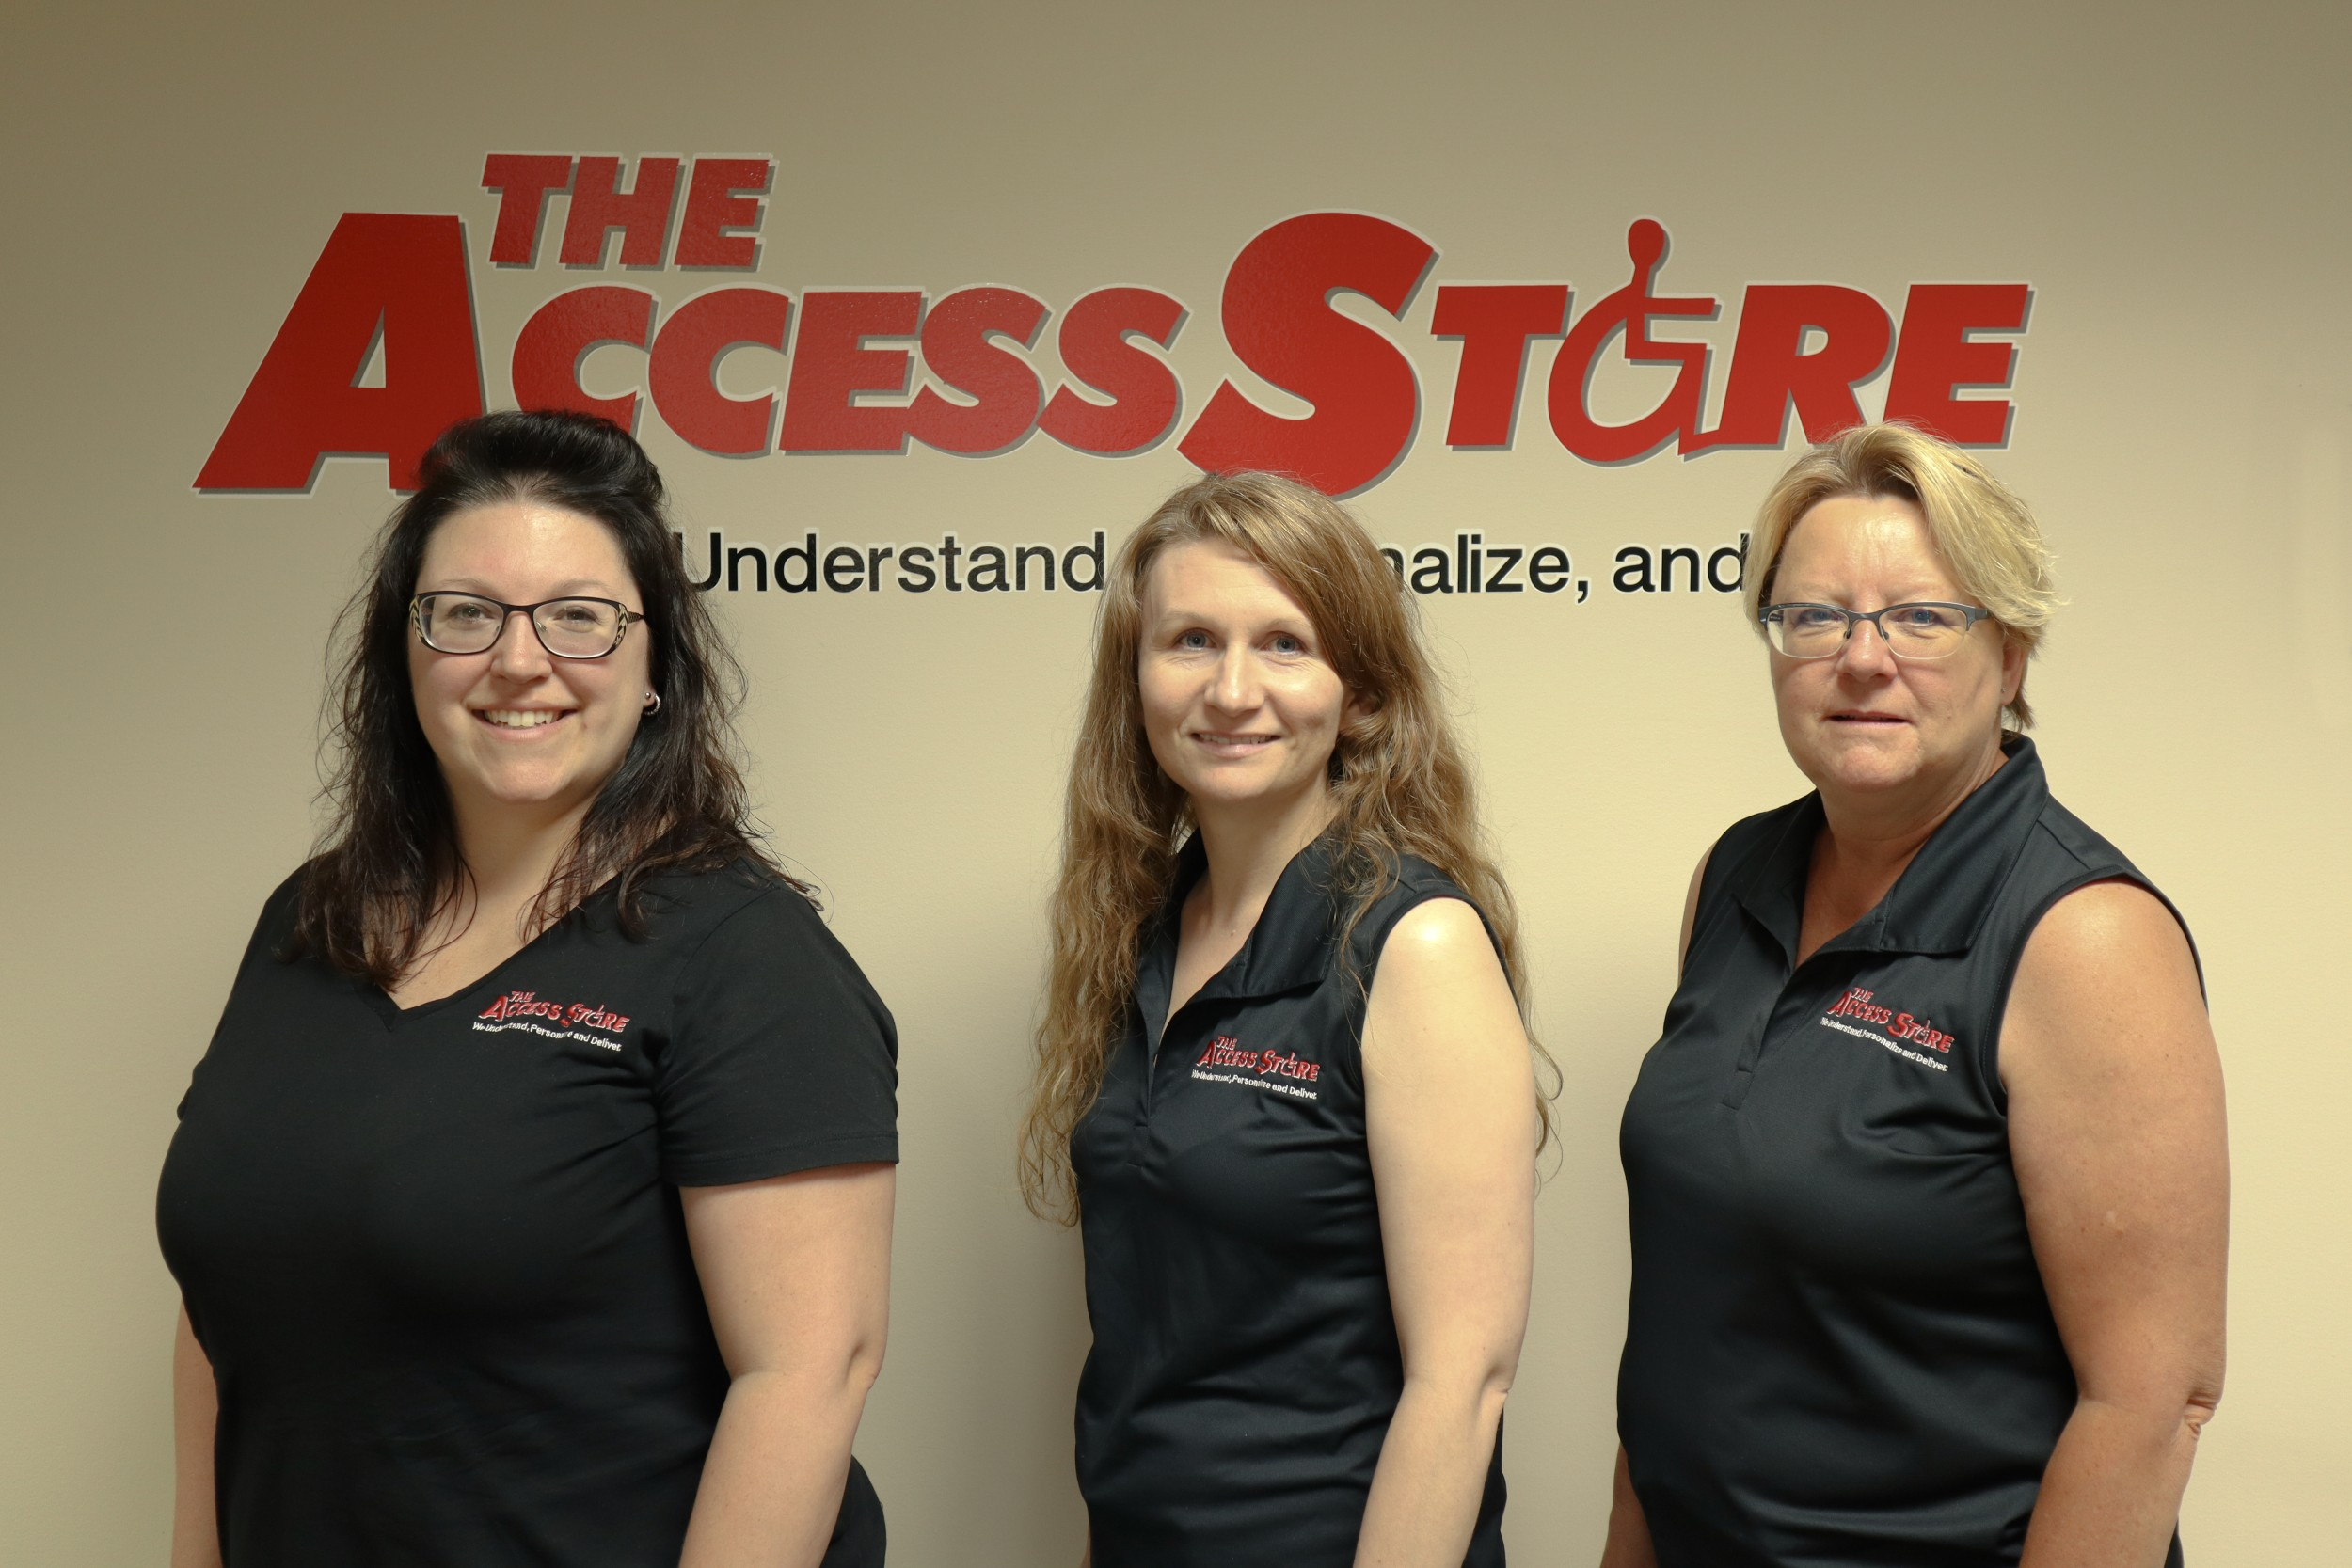 Photo of The Access Store Employees